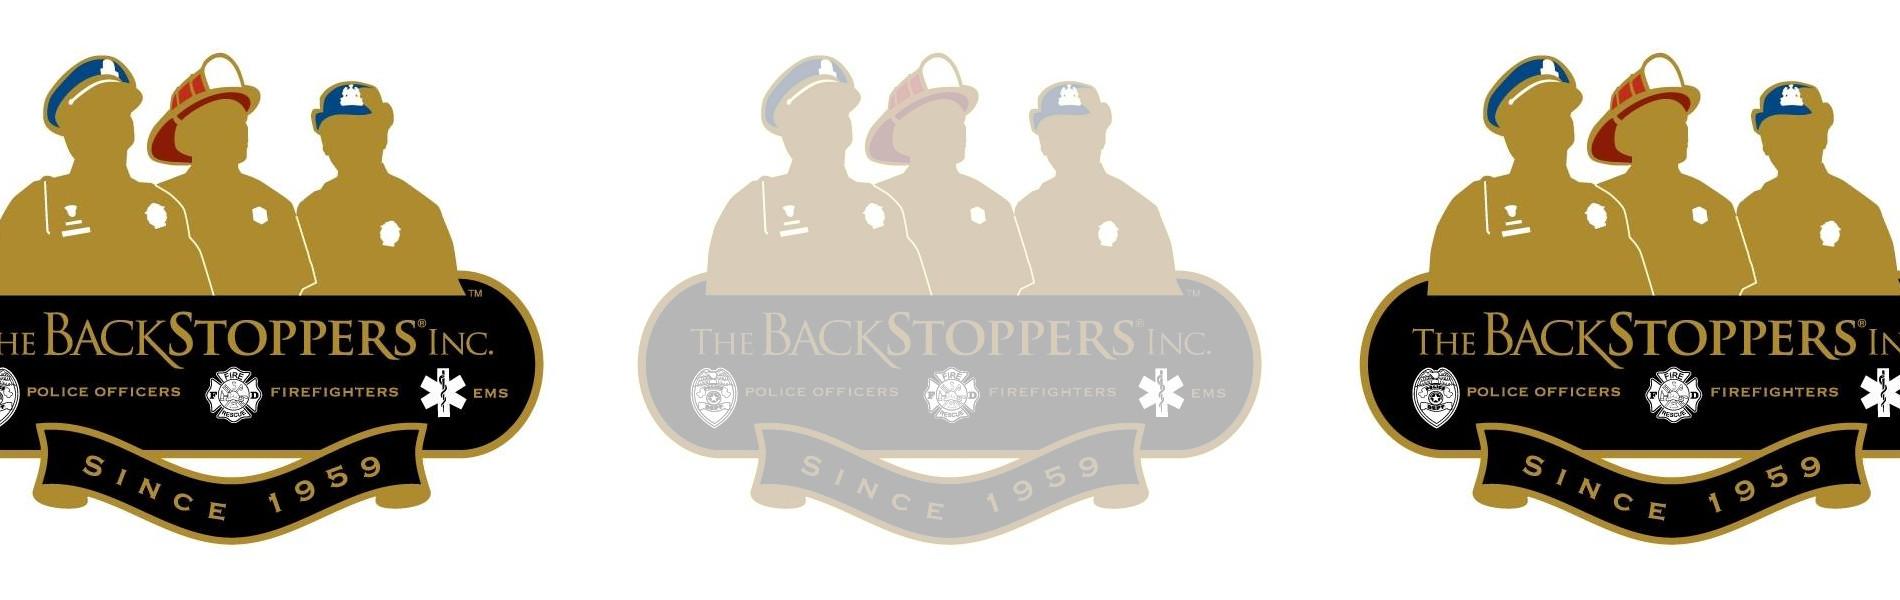 backstoppers-1900×600